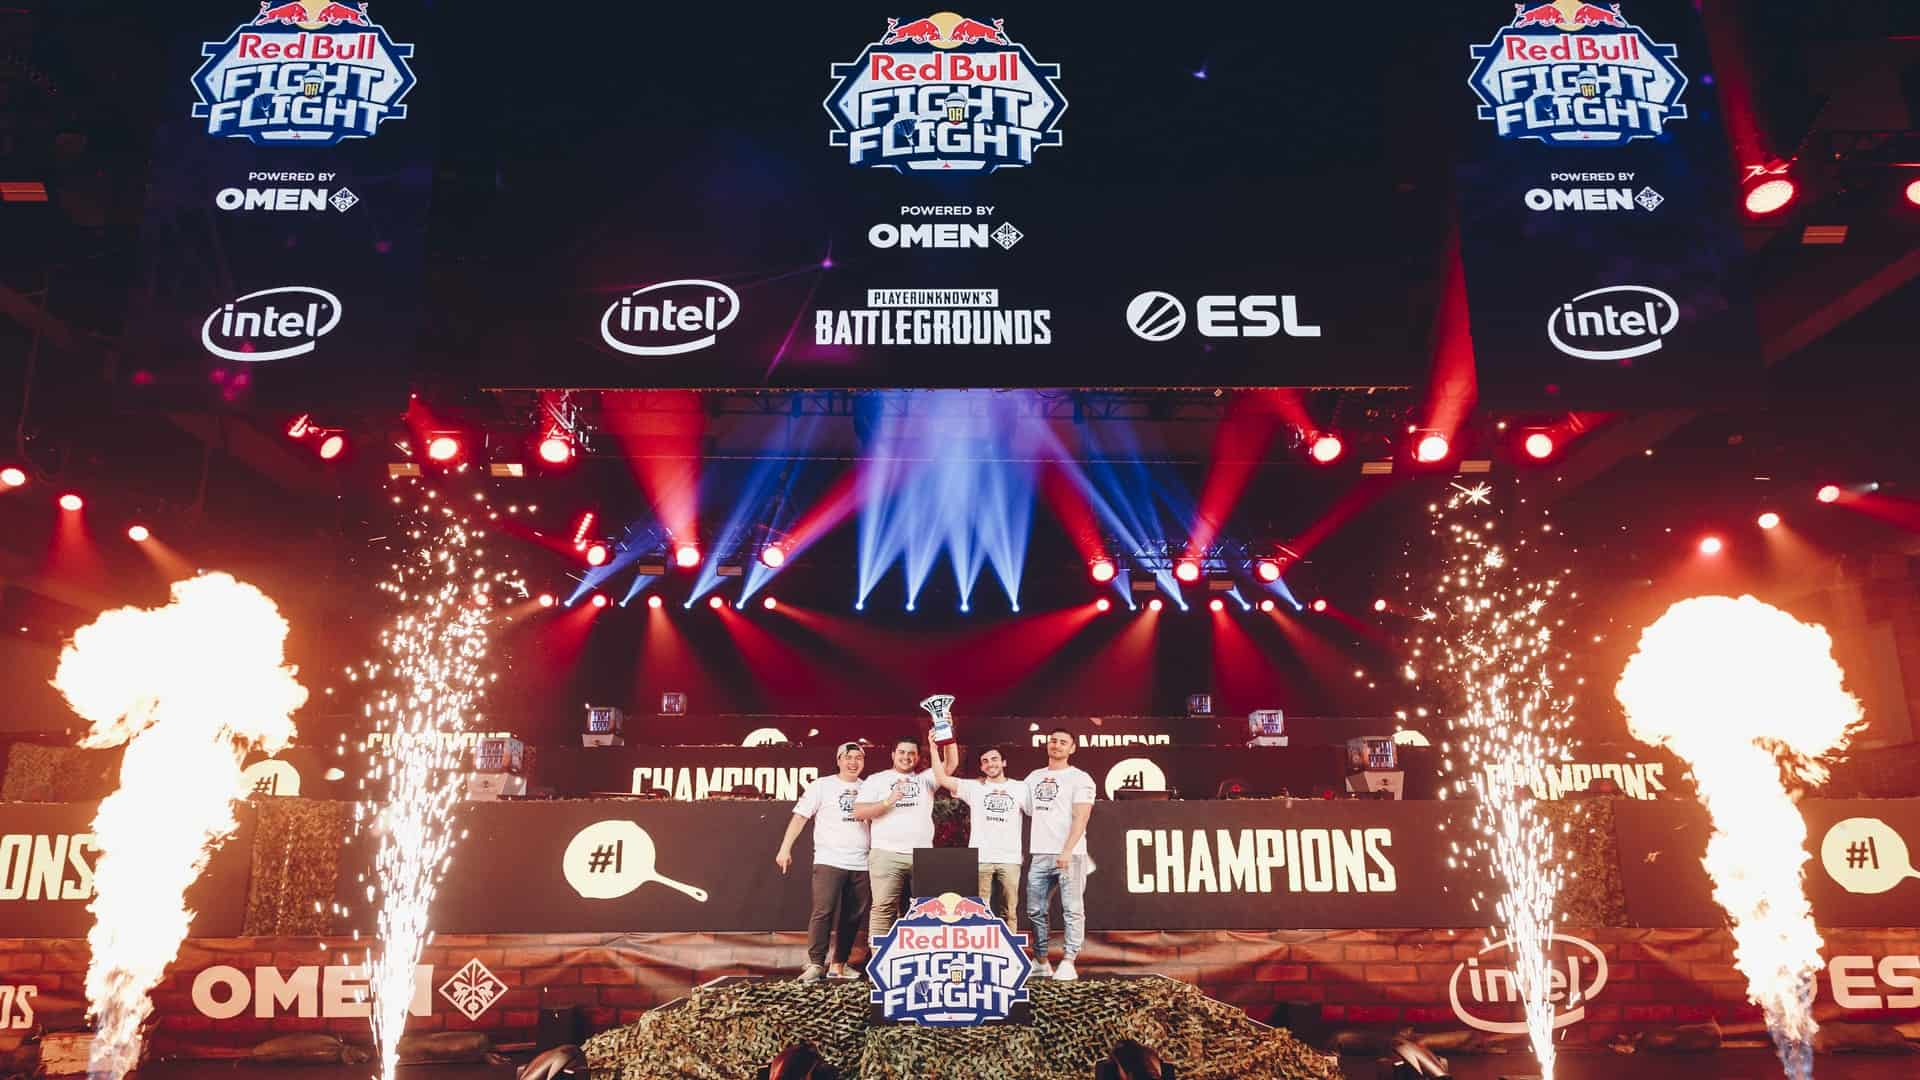 Team Immunity Win Red Bull Fight or Flight Grand Final